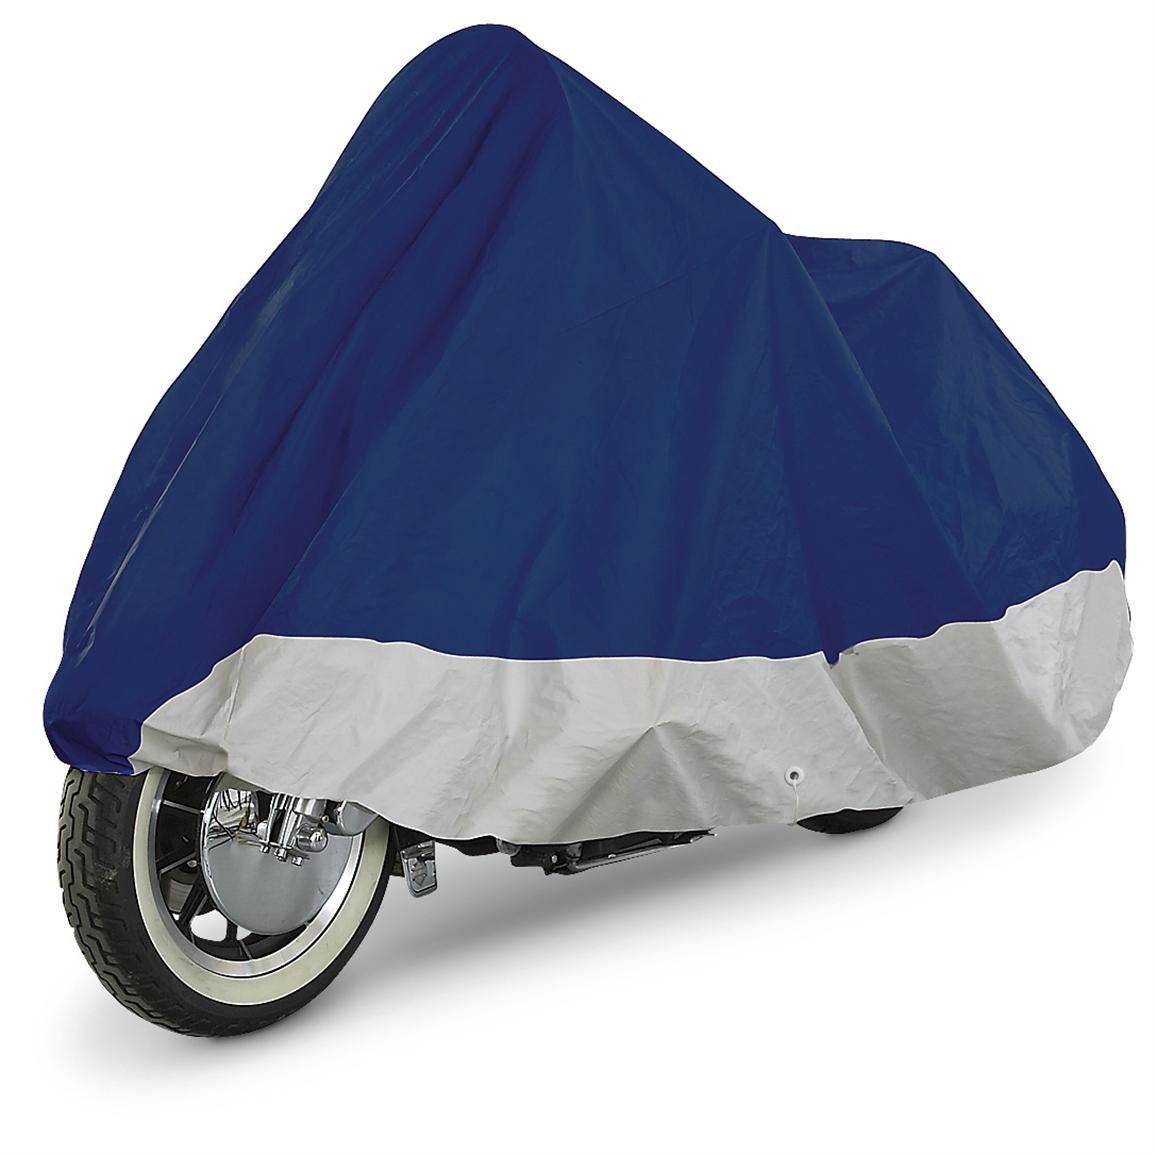 Motorcycle Cover Bike Waterproof Outdoor Rain Dust Proof Small 93*35*46 Inches